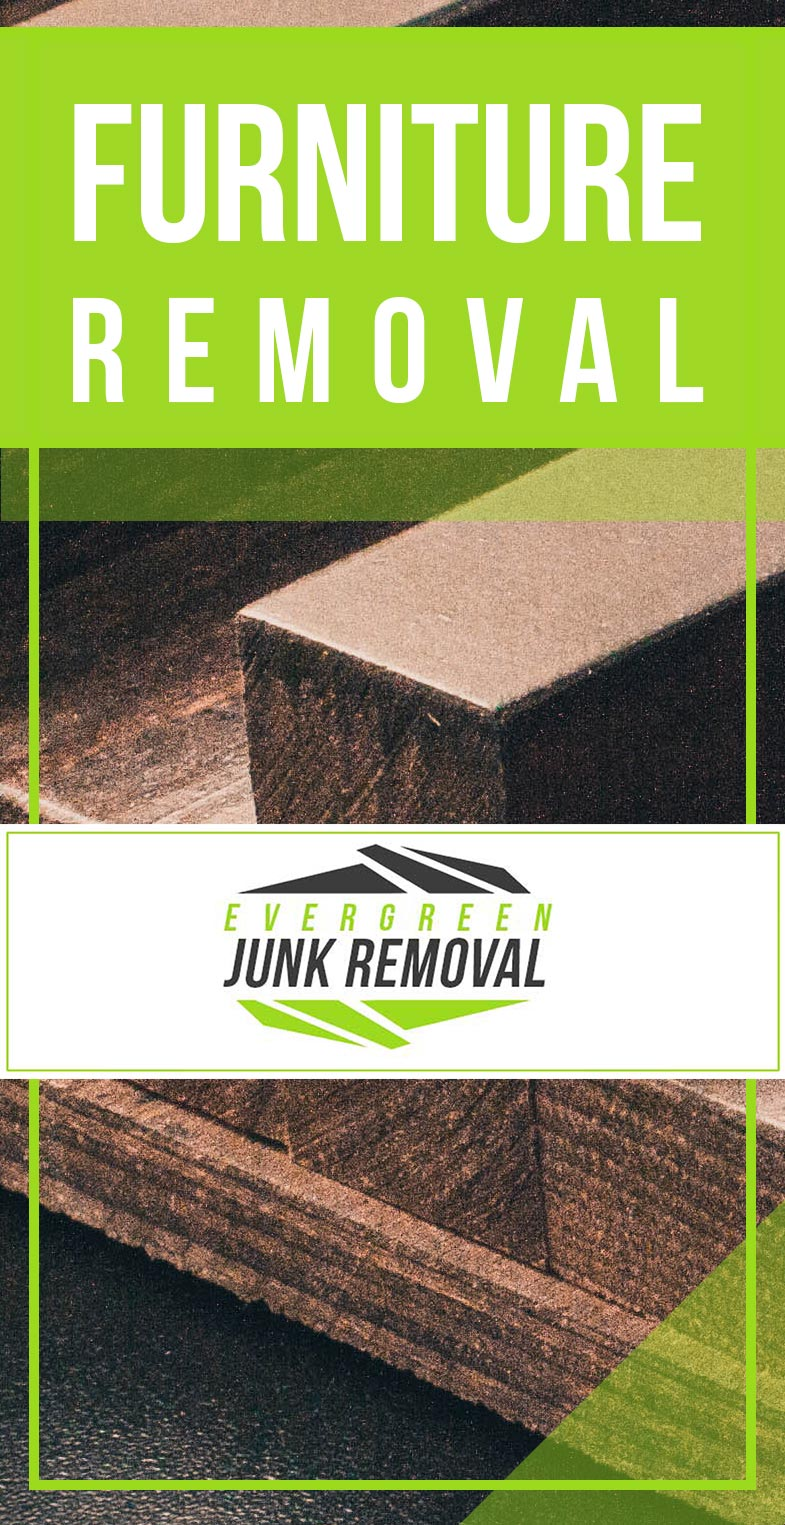 Rock Hill Furniture Removal